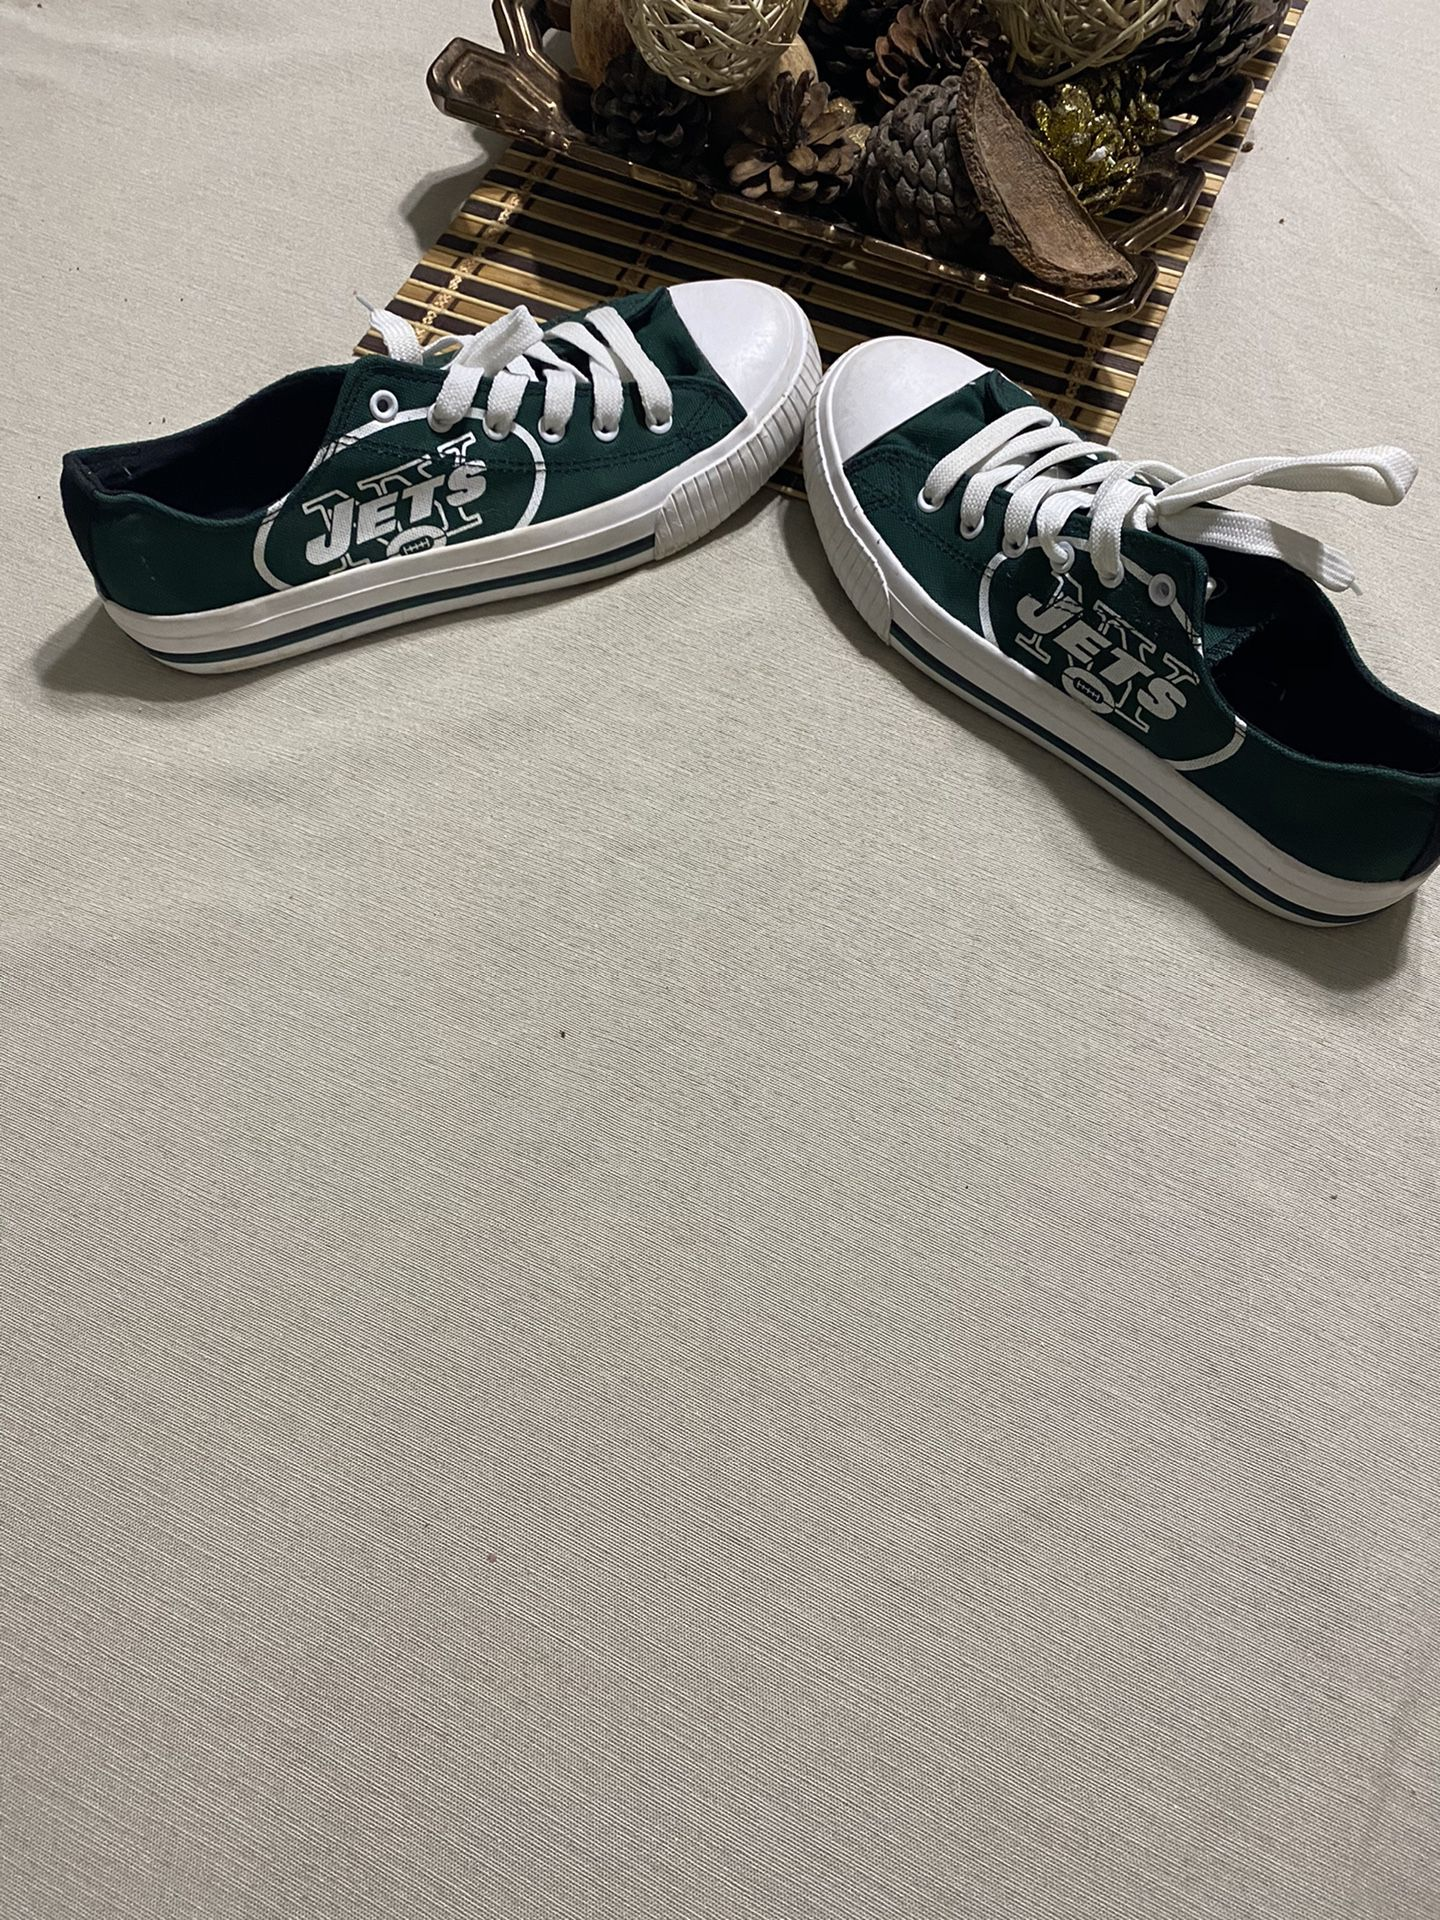 New York jets sneakers